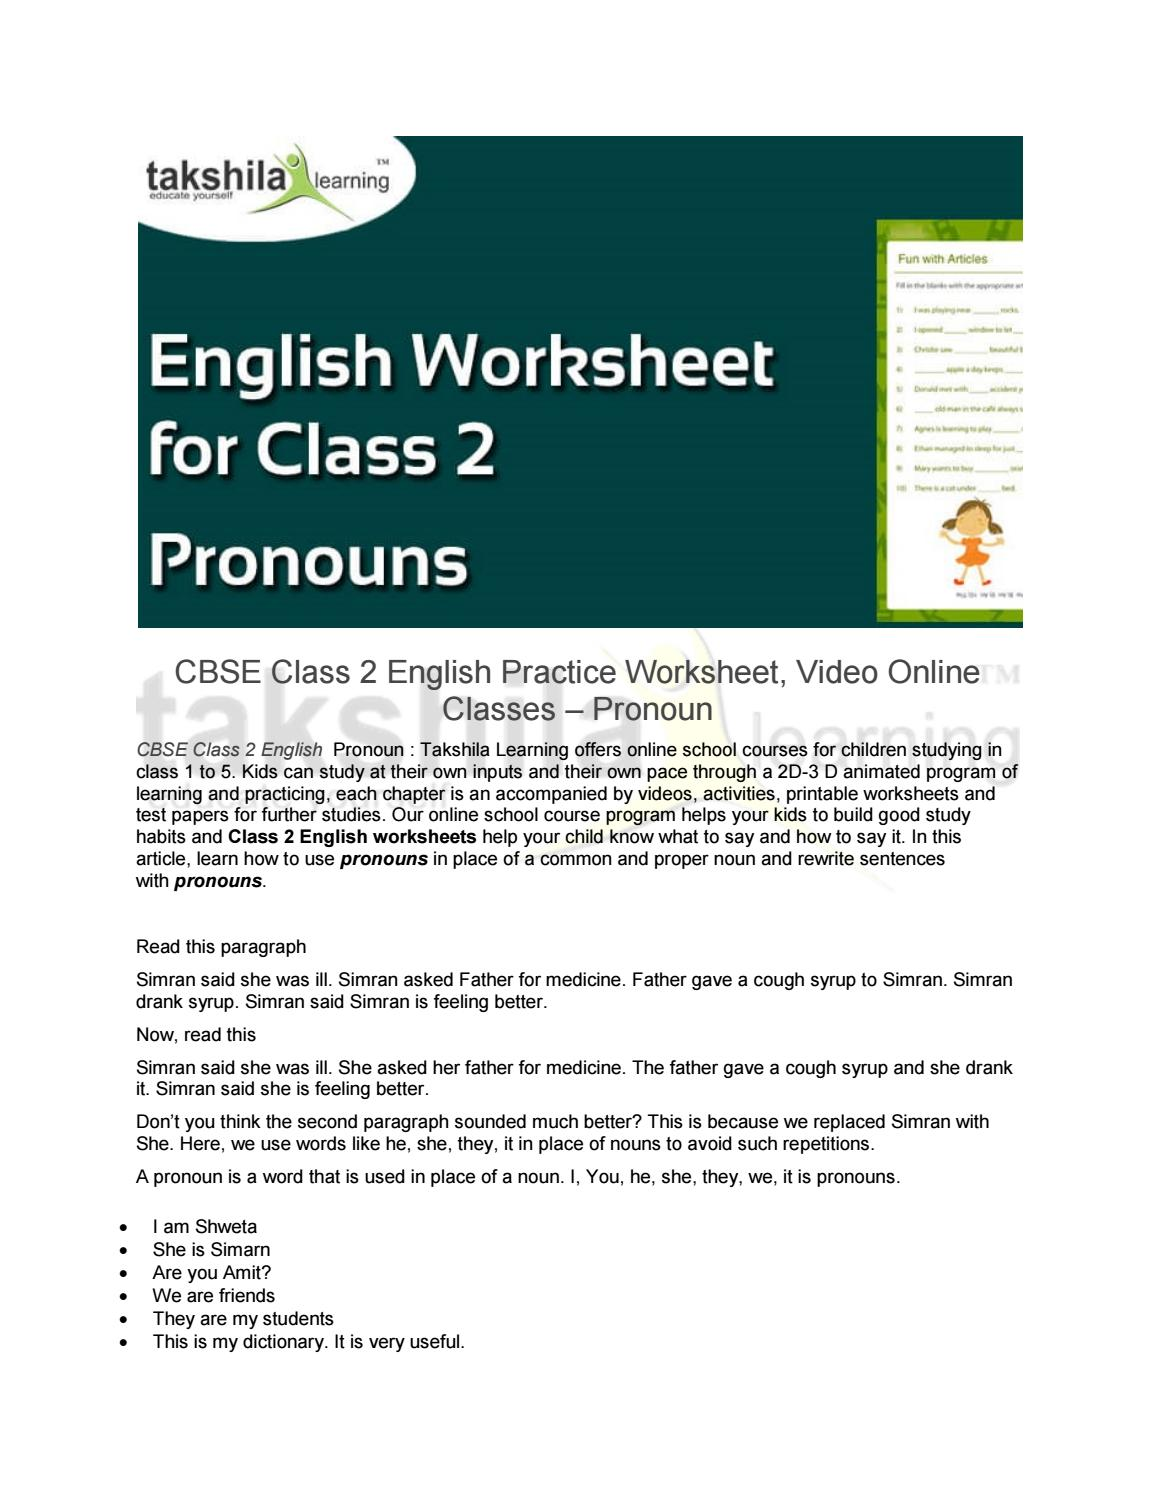 Cbse Class 2 English Practice Worksheet Pronouns By Takshila Learning Online Classes Issuu